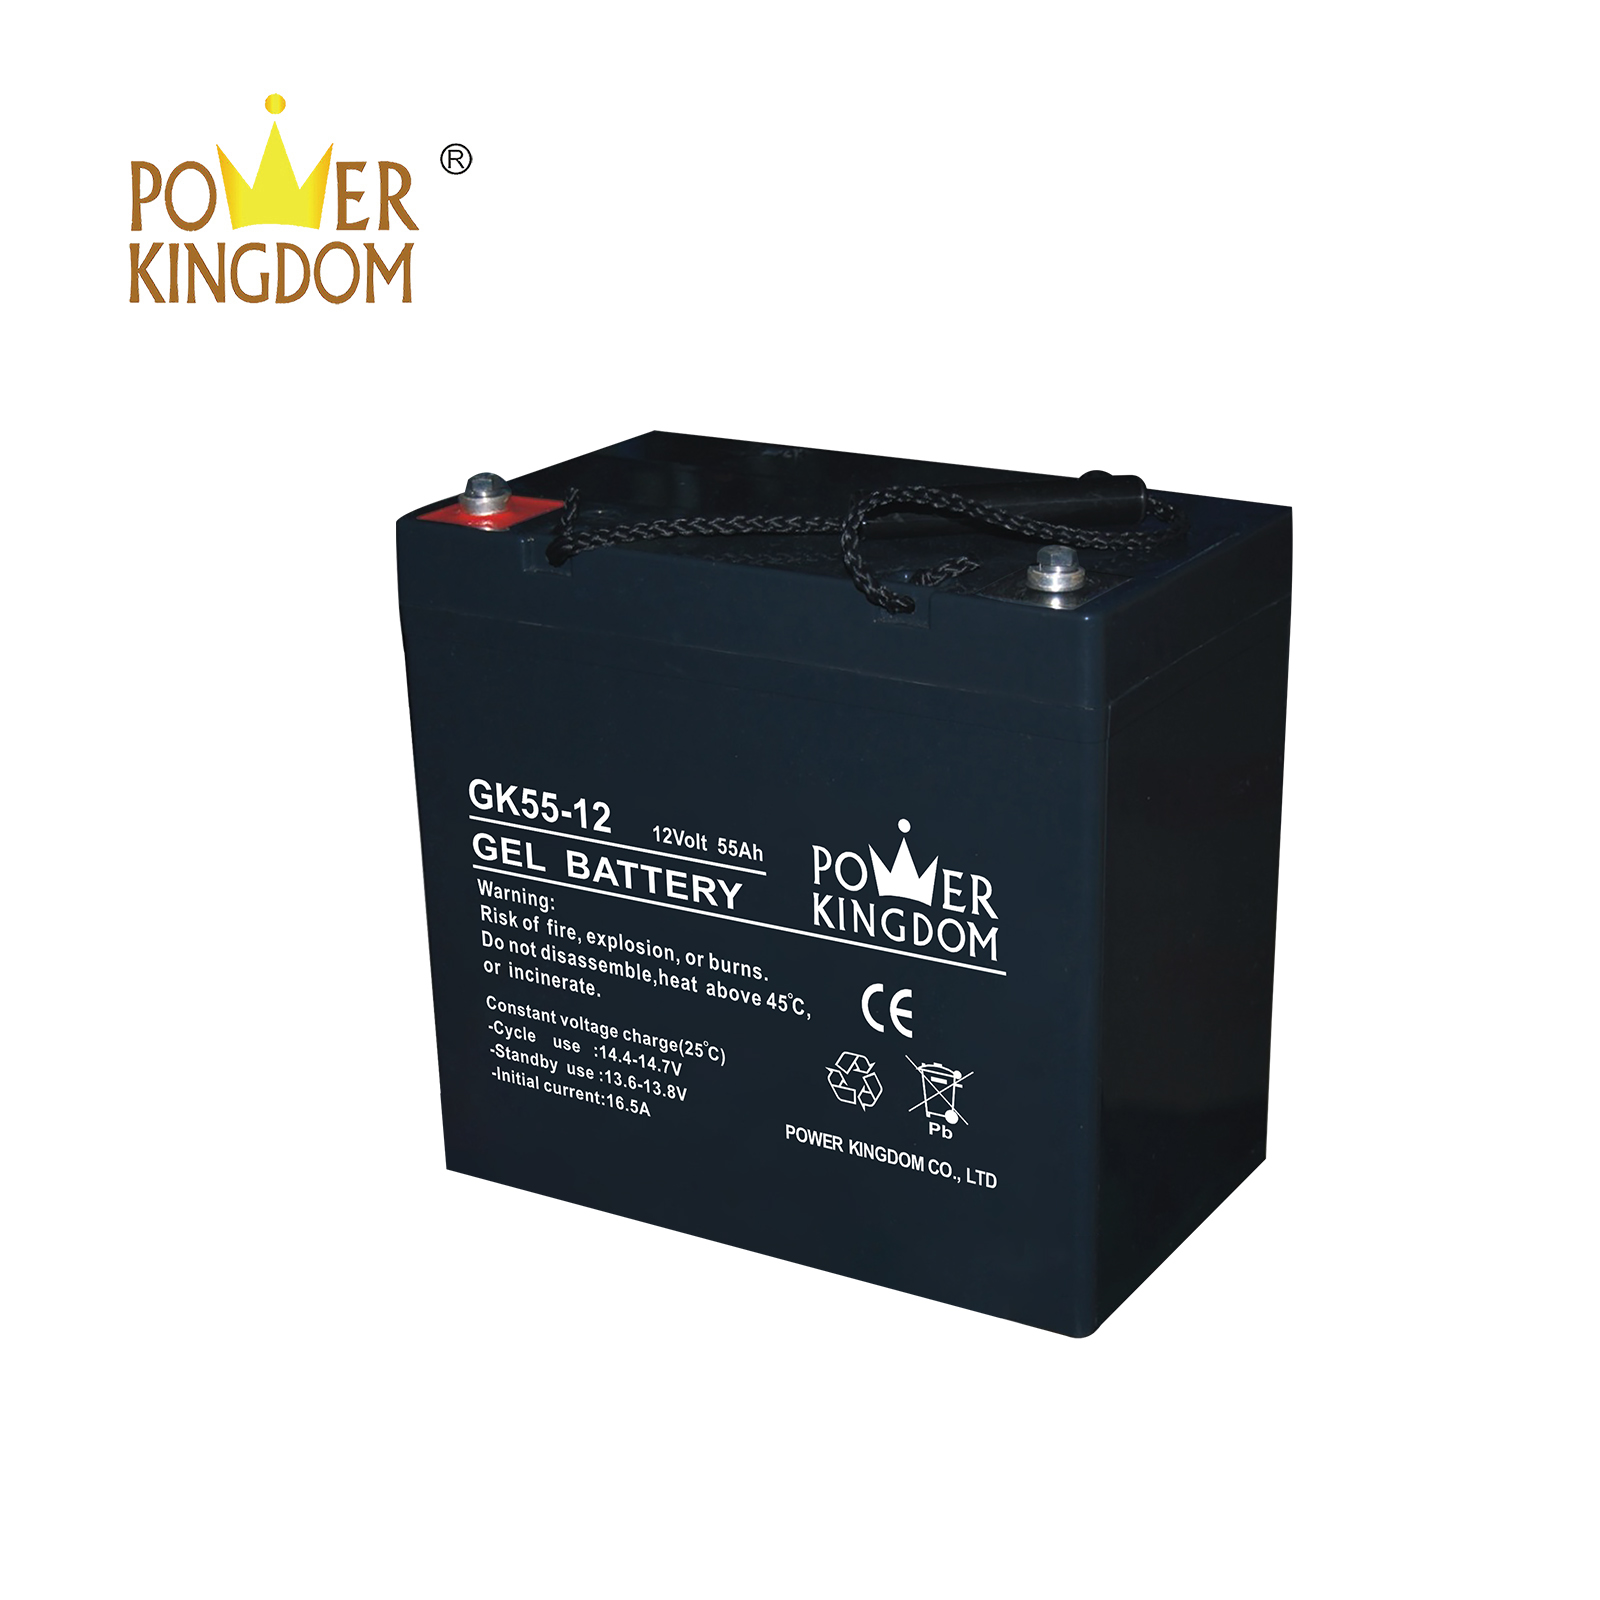 Power Kingdom sealed cell battery Suppliers medical equipment-2